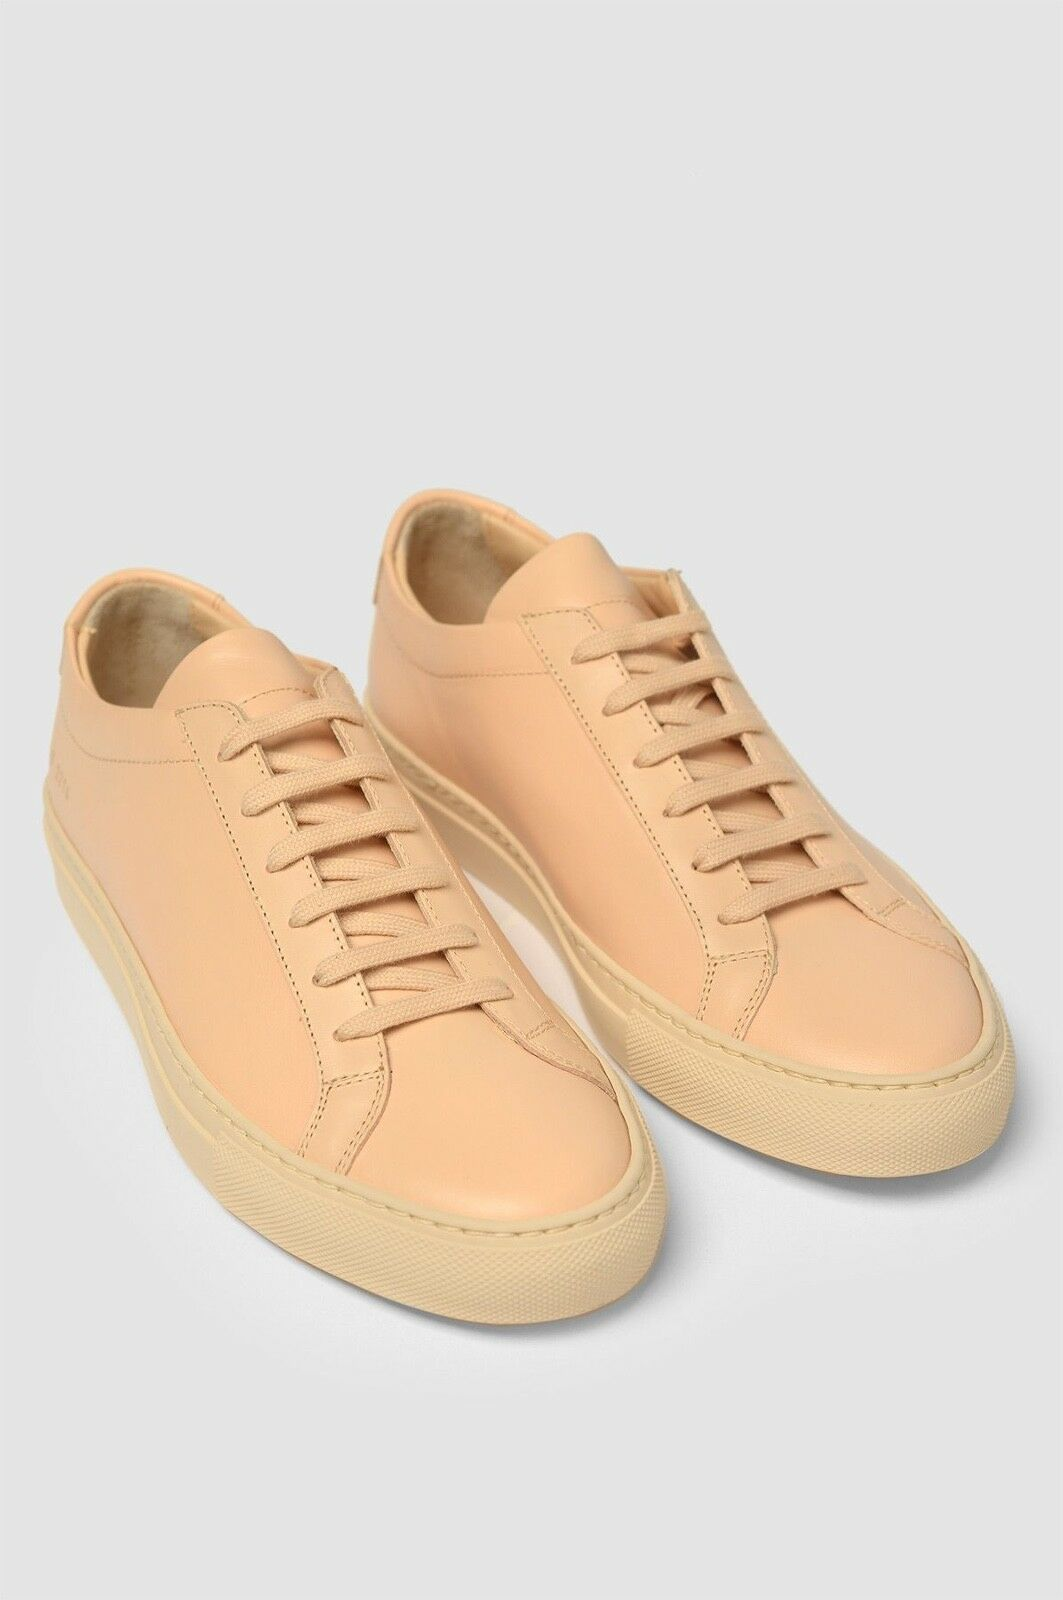 Scarpe casual da uomo  NEW WITH BOX COMMON PROJECTS ACHILLES LOW LEATHER SNEAKERS NATURAL 39 6